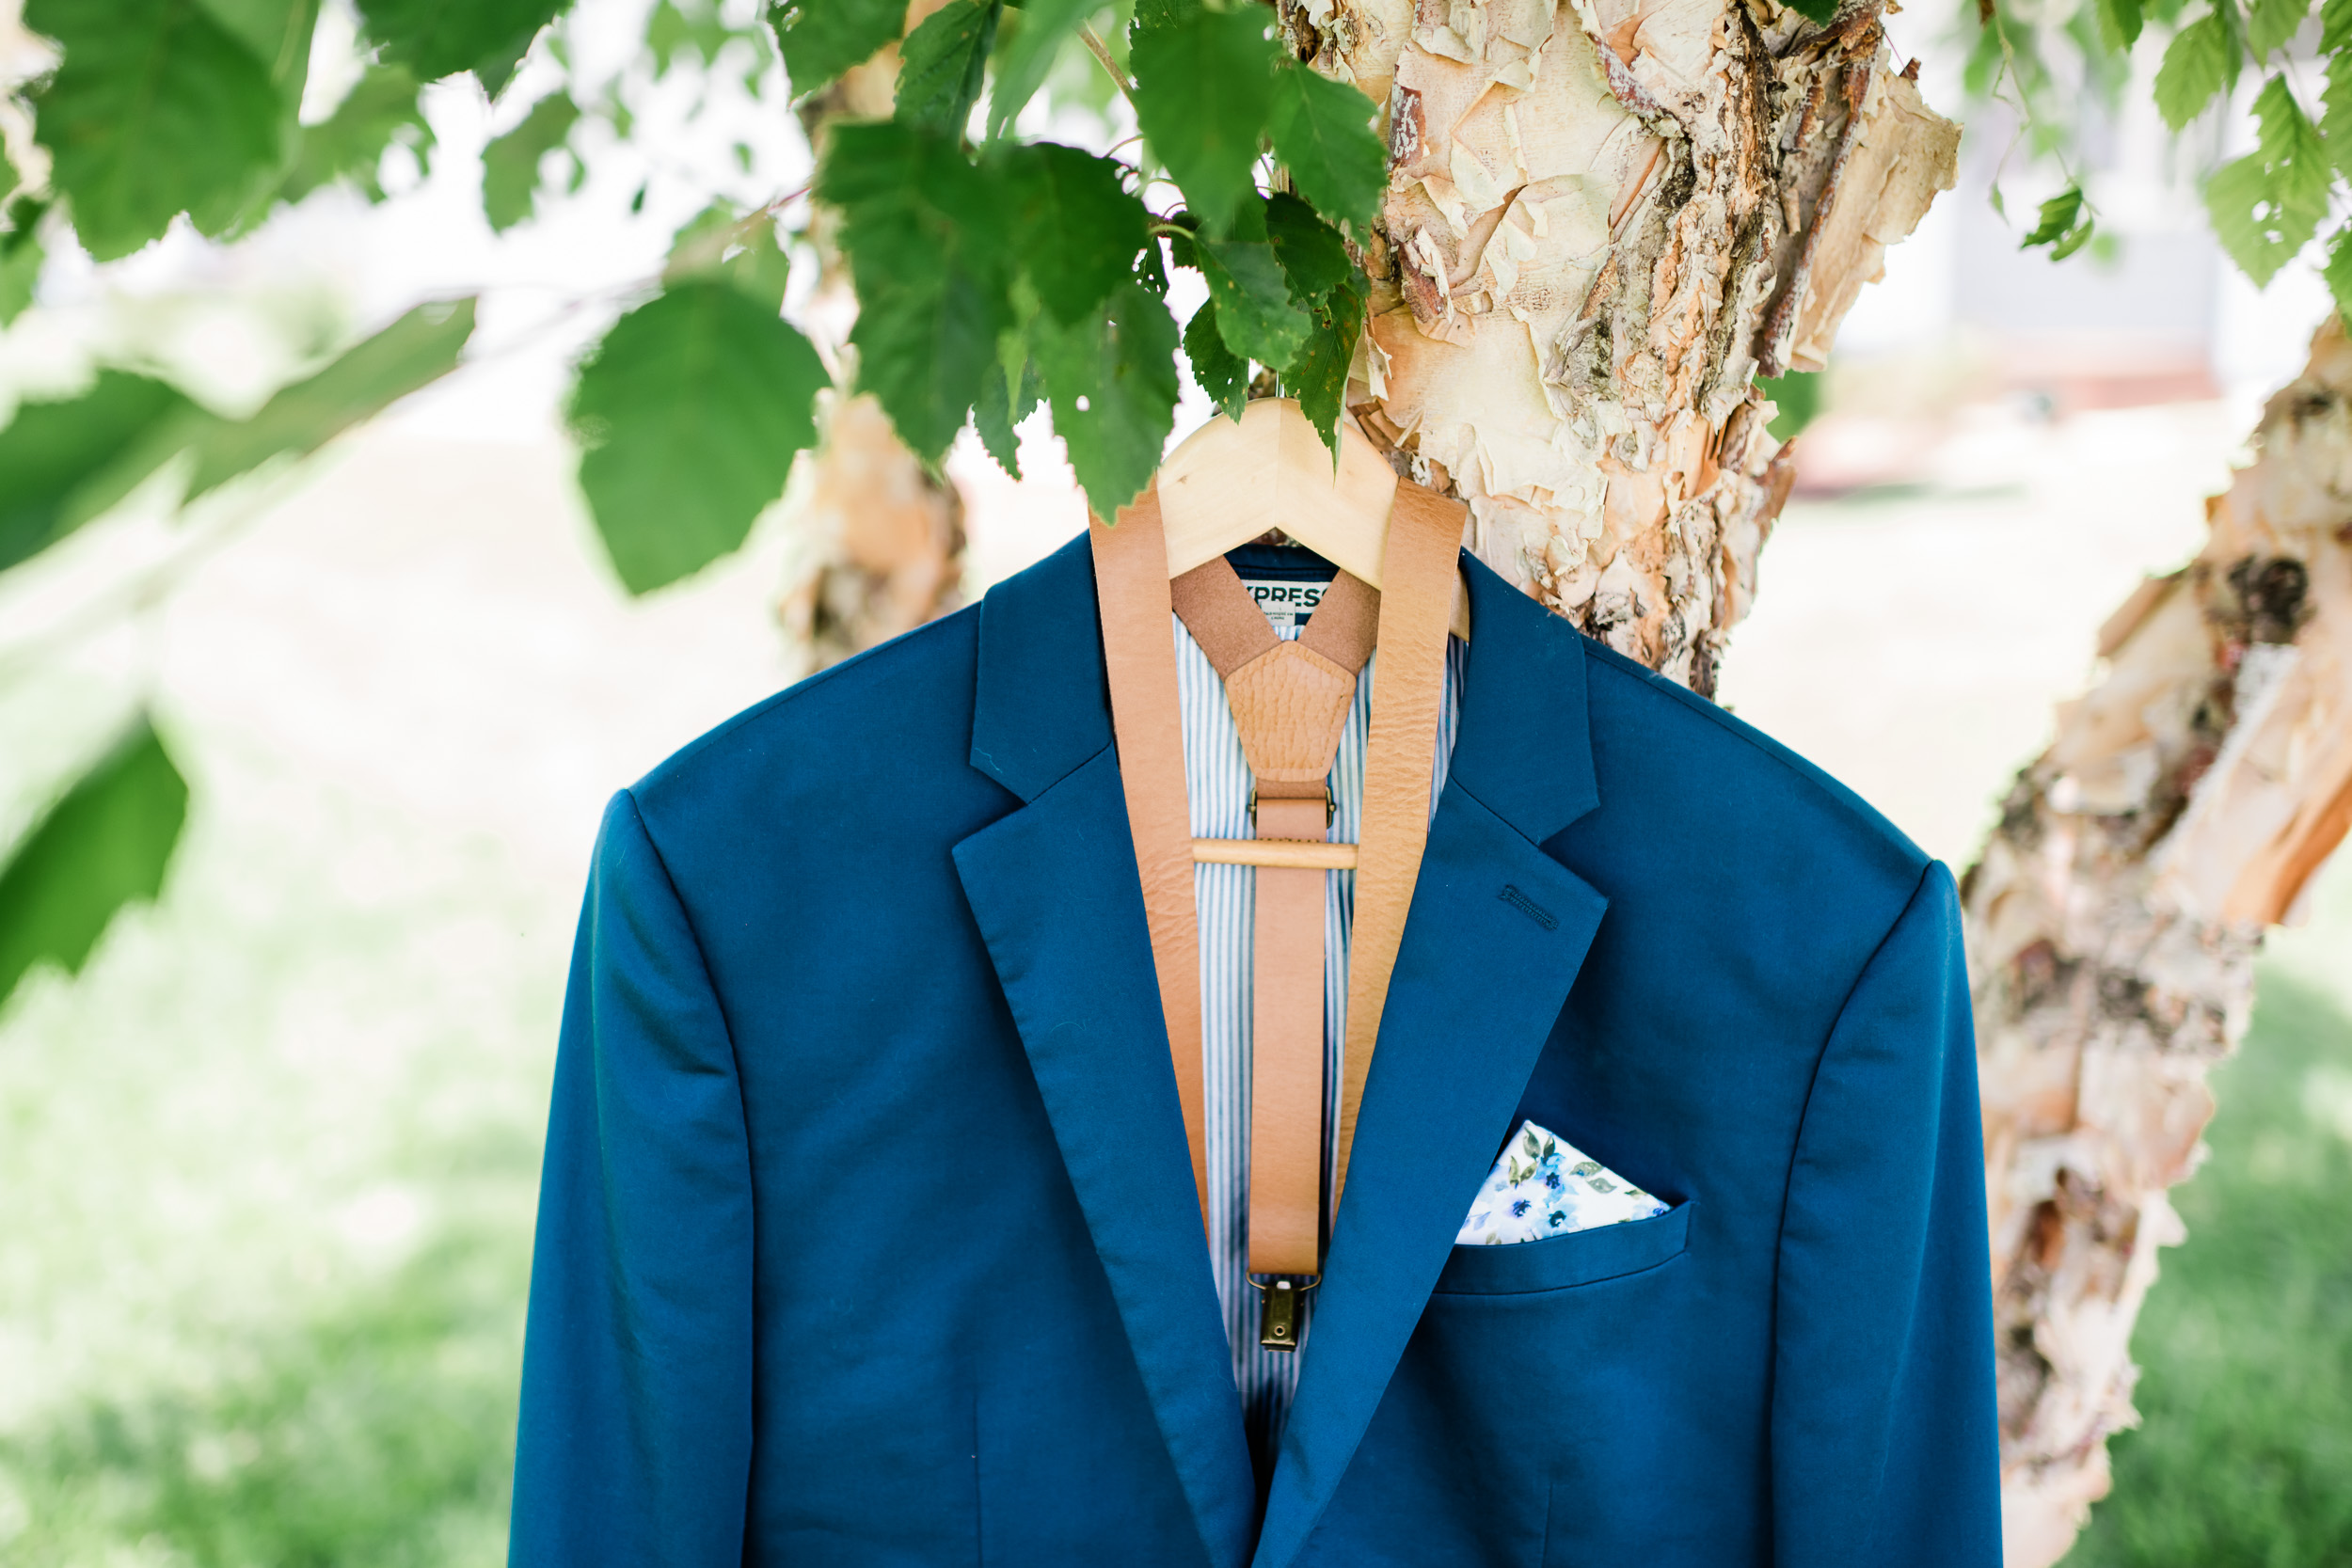 Groom's jacket hanging in a tree